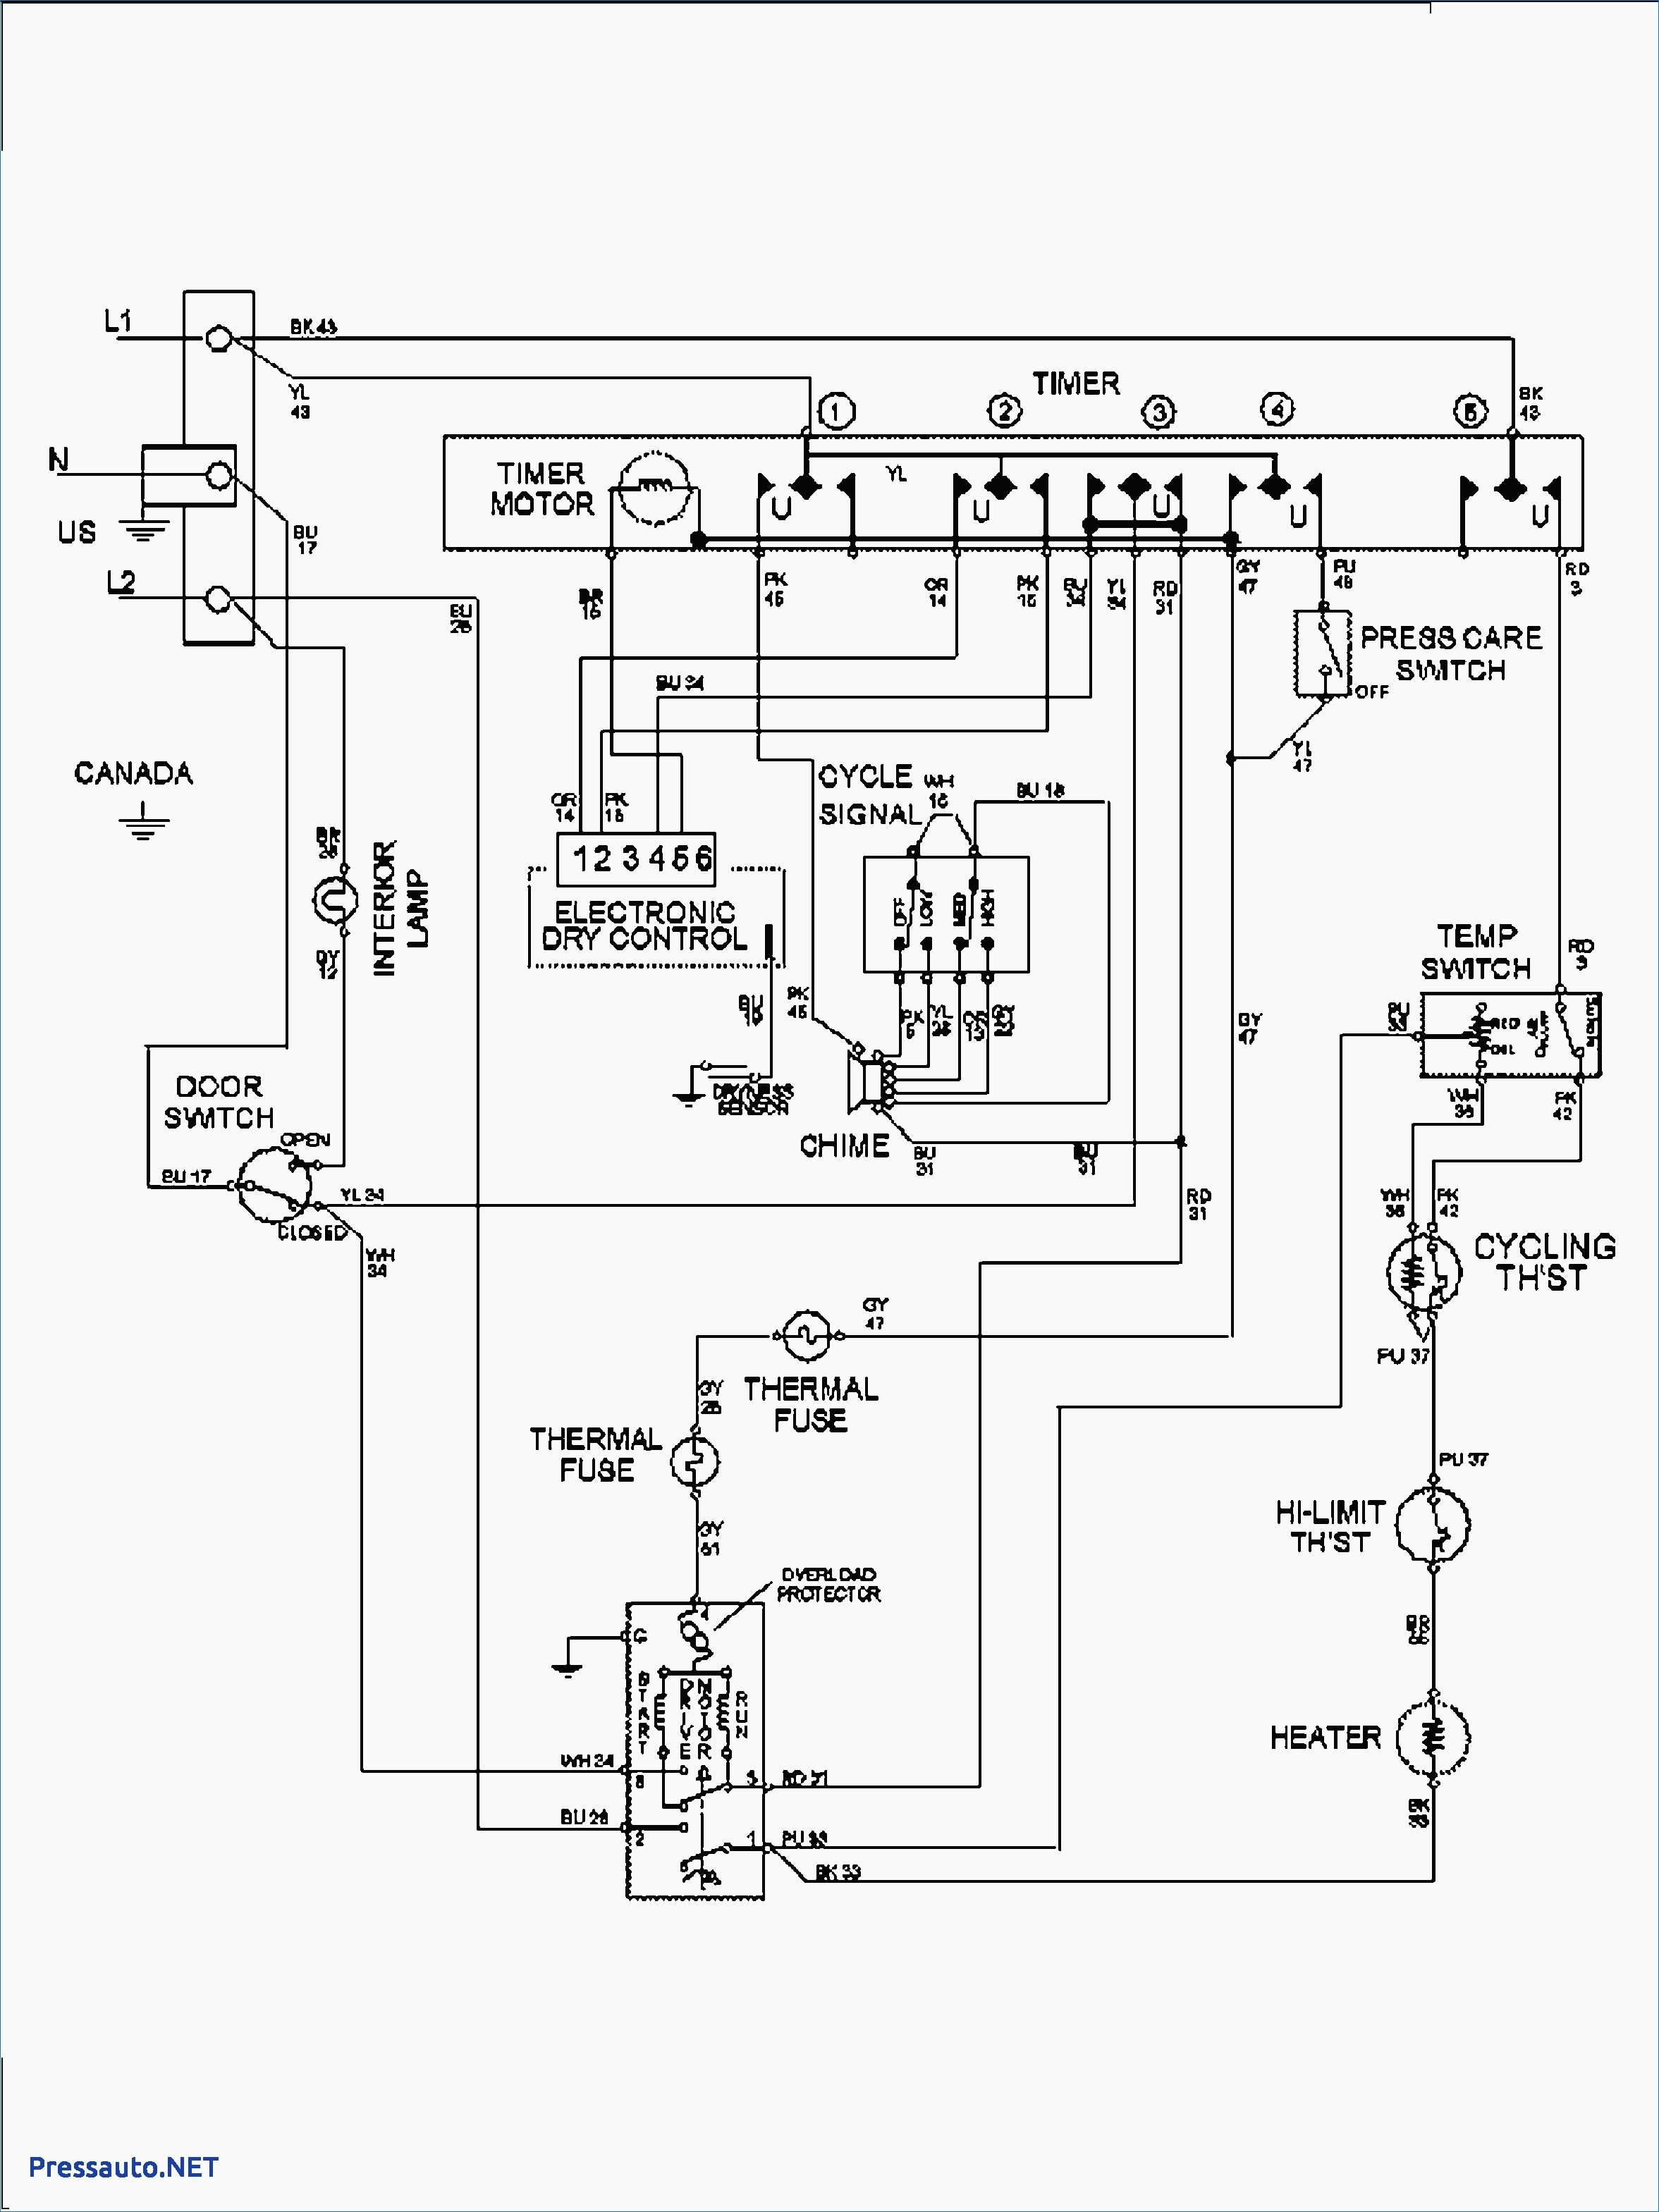 whirlpool wiring diagram